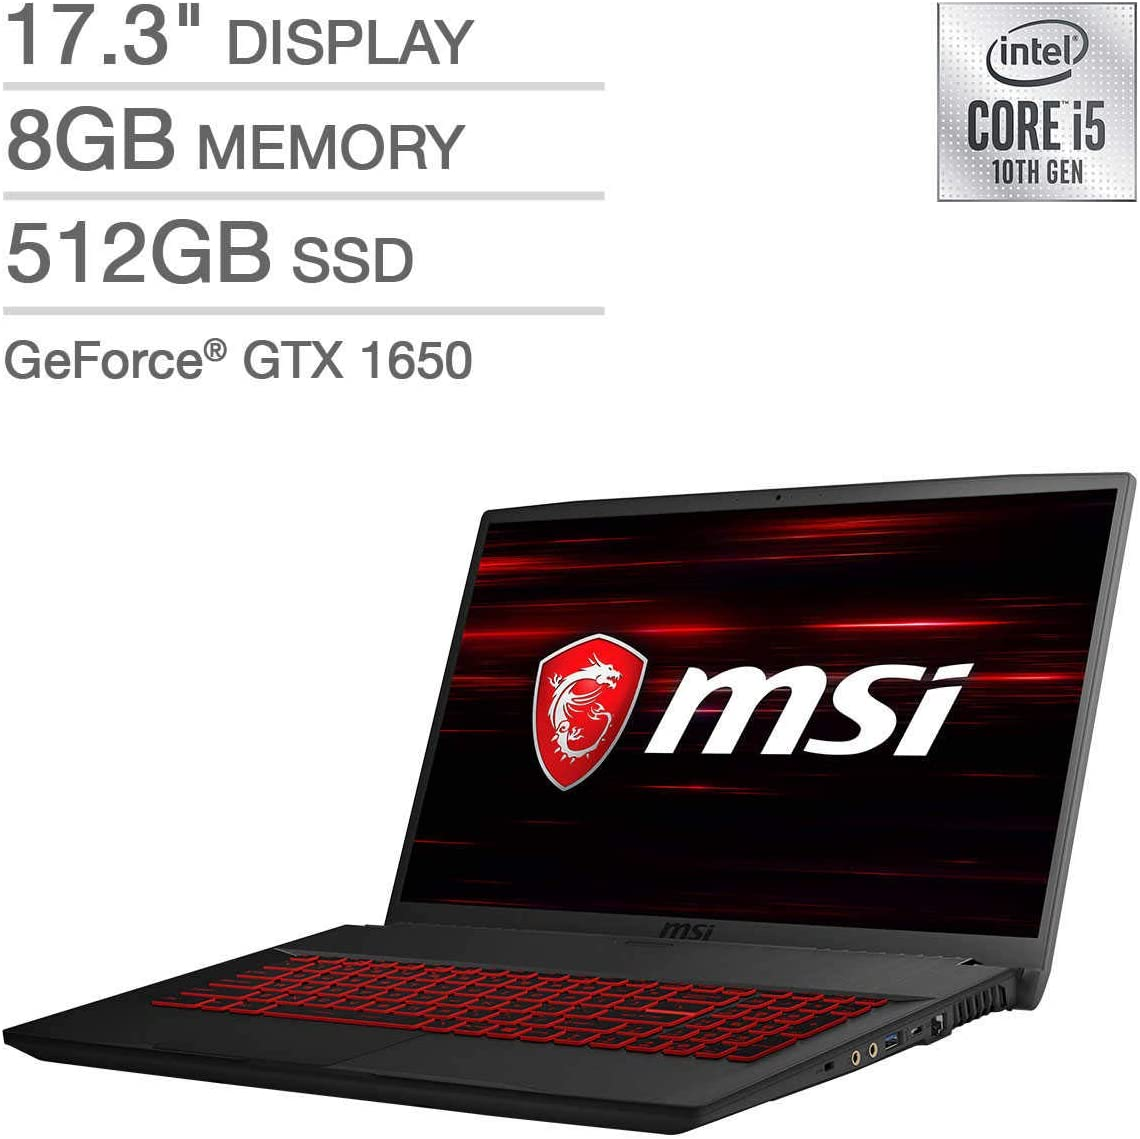 "2020 MSI GF75 Thin Gaming Laptop: 10th Gen Core i5-10300H, 512GB SSD, 17.3"" Full HD 120Hz Display, NVIDIA GTX 1650, 8GB RAM"